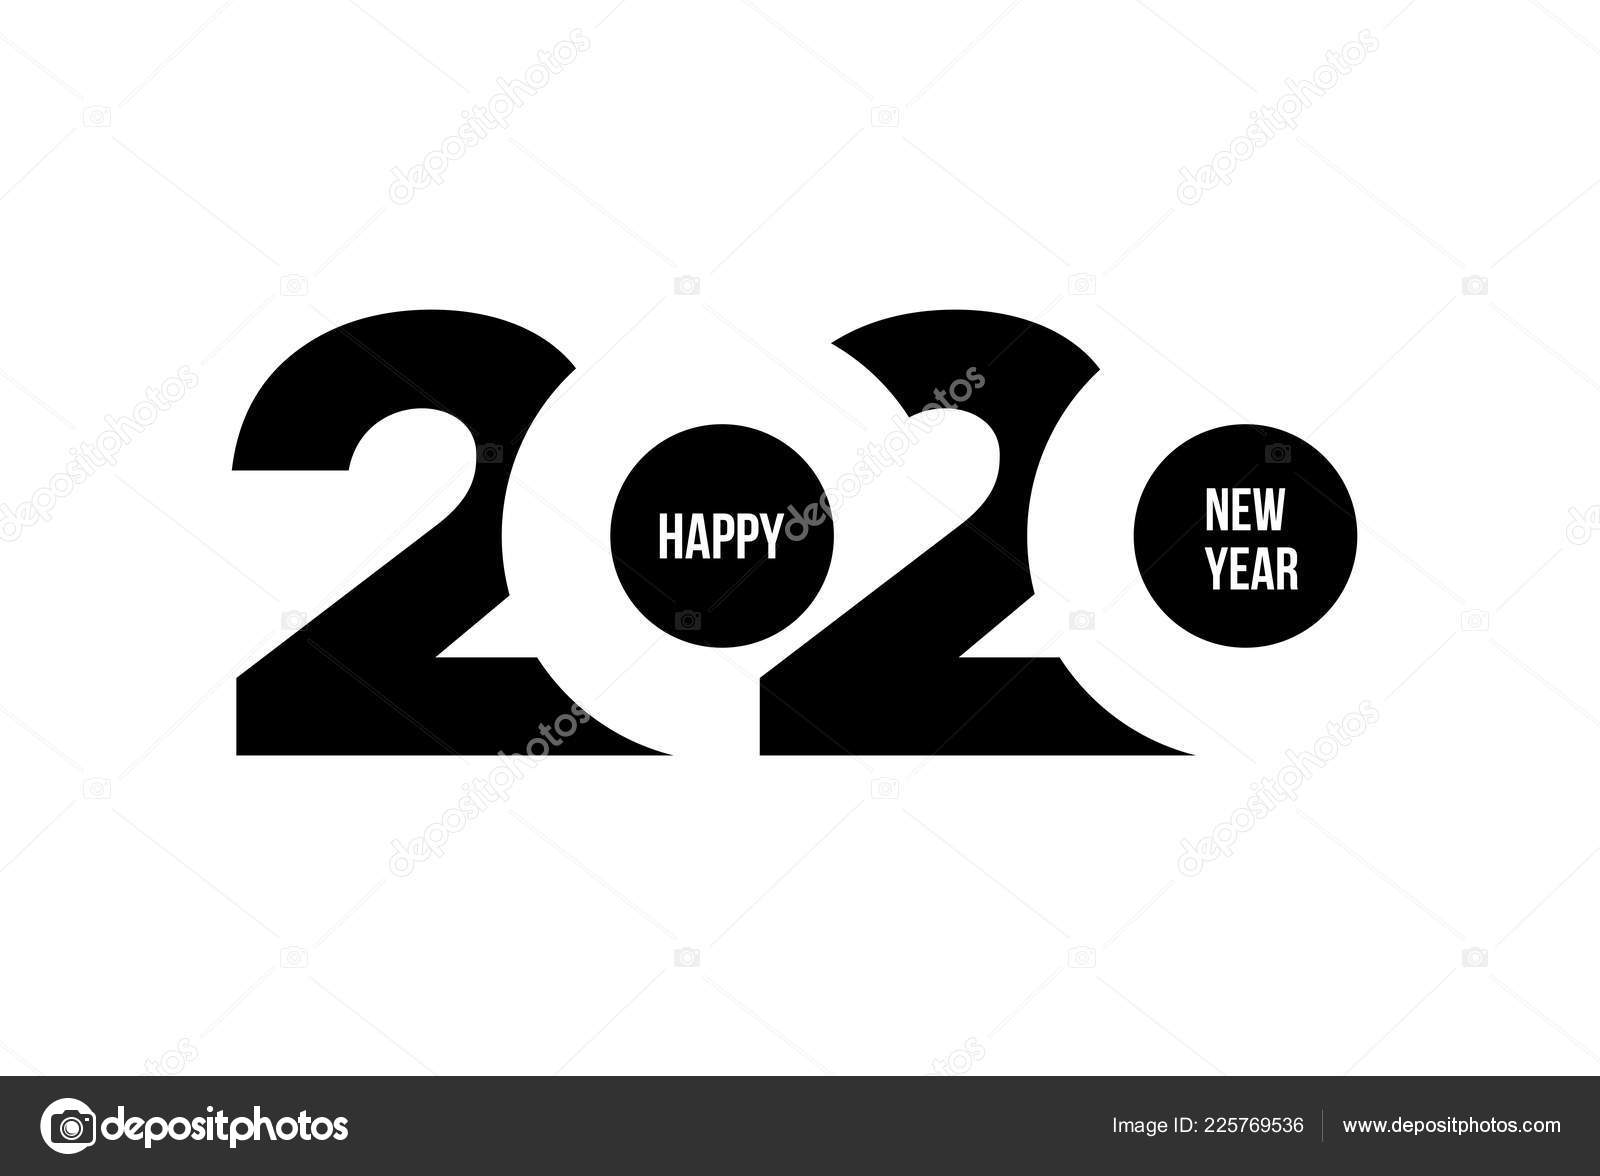 Happy New Year 2020 - Happy New Year 2020 Images Wishes ...